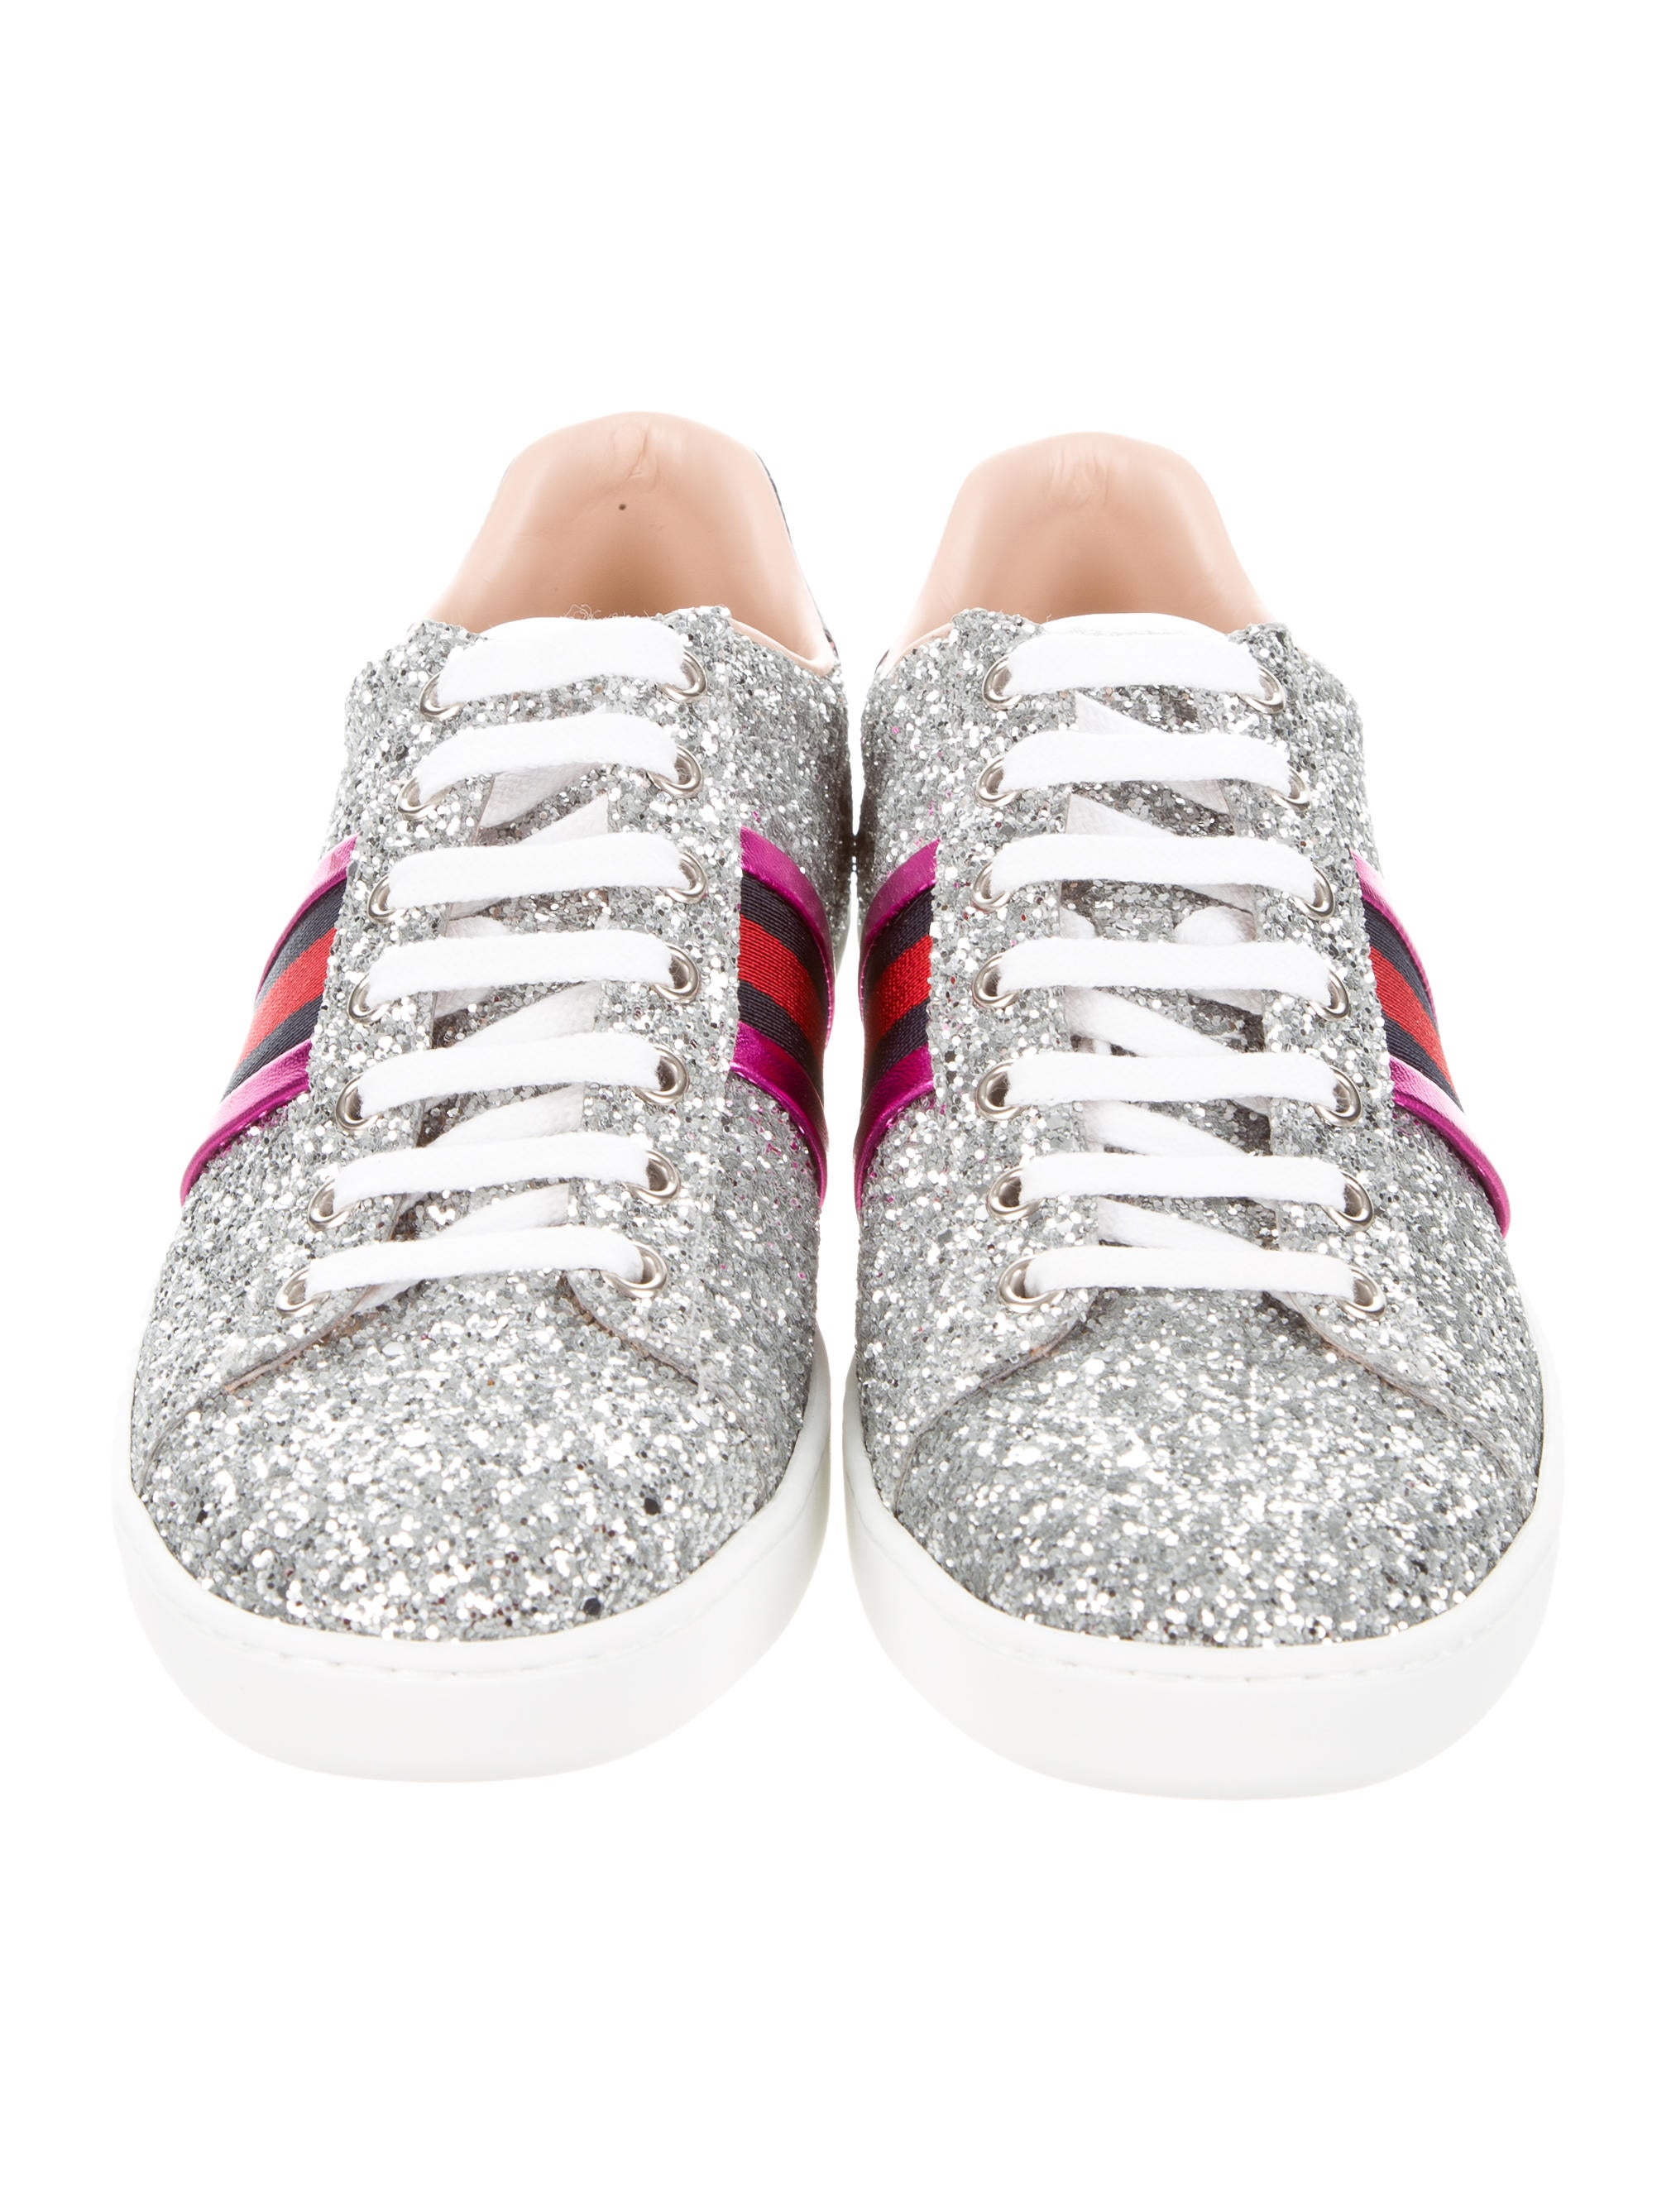 Gucci Ace Glitter Sneakers w/ Tags - Shoes - GUC165607 | The RealReal